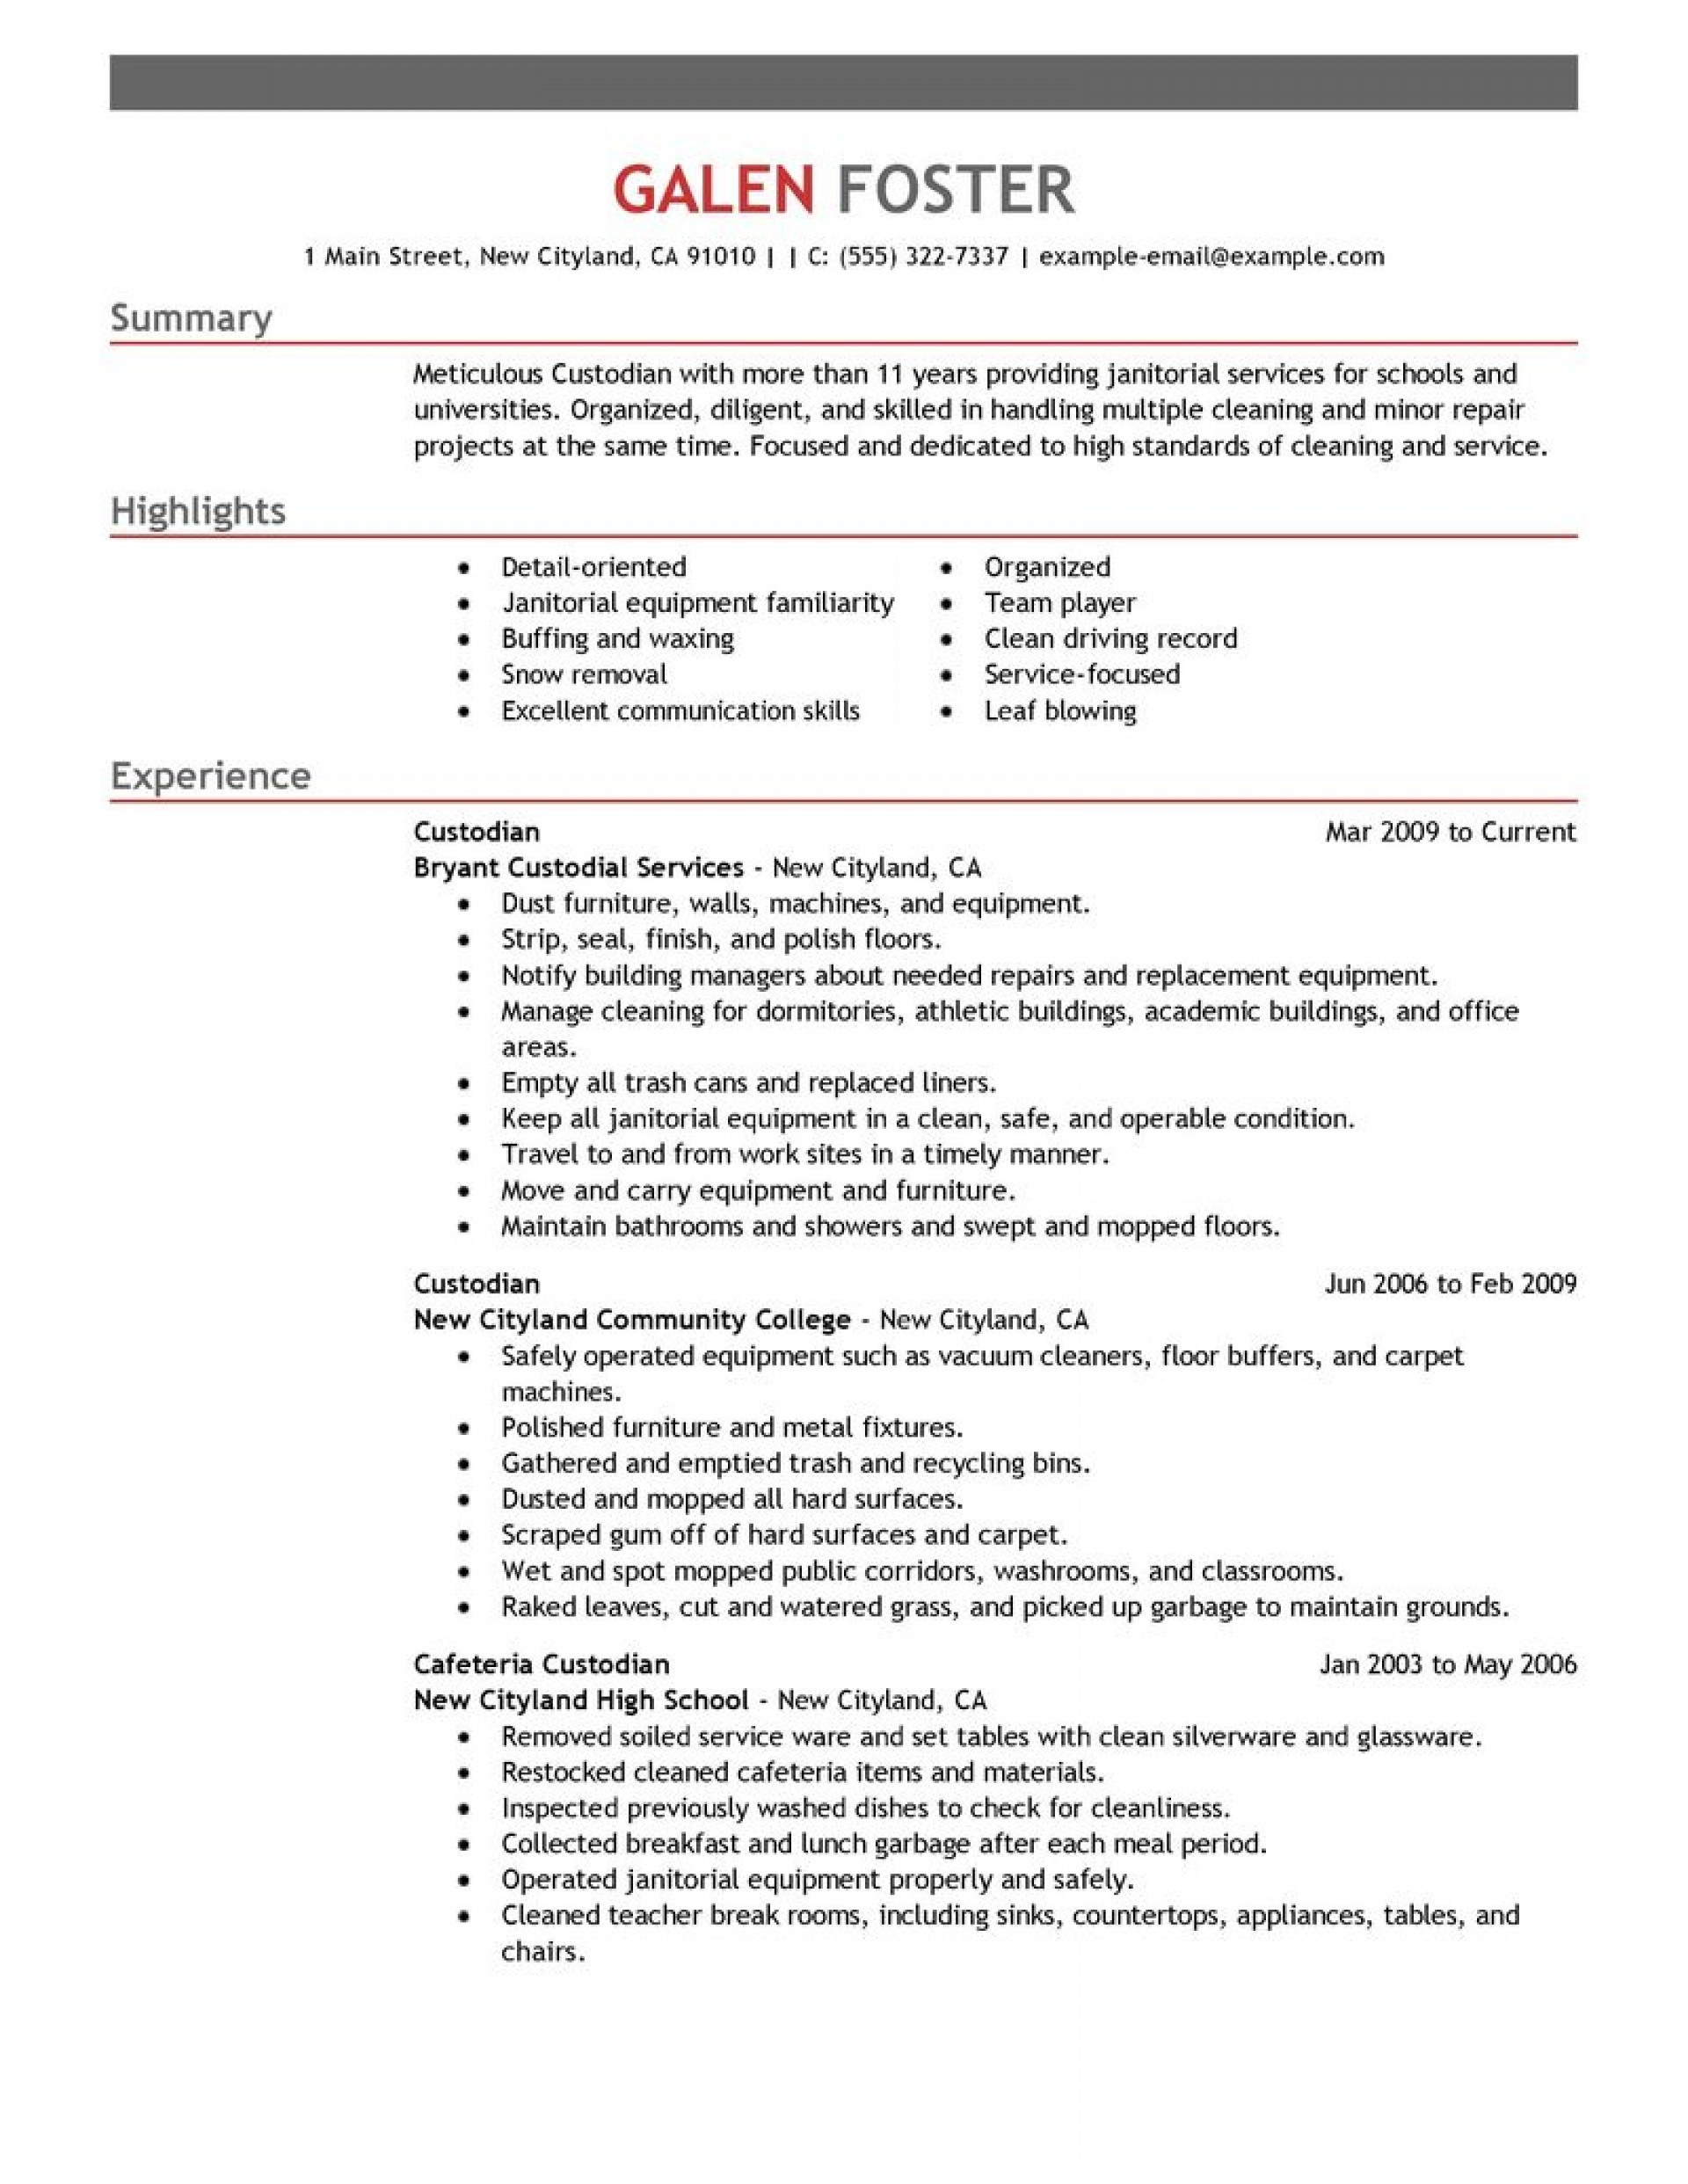 026 Strengths And Weaknesses Essay Cleaning Professionals Maintenance Janitorial Emphasis Impressive Examples Mba For Introduction 1920